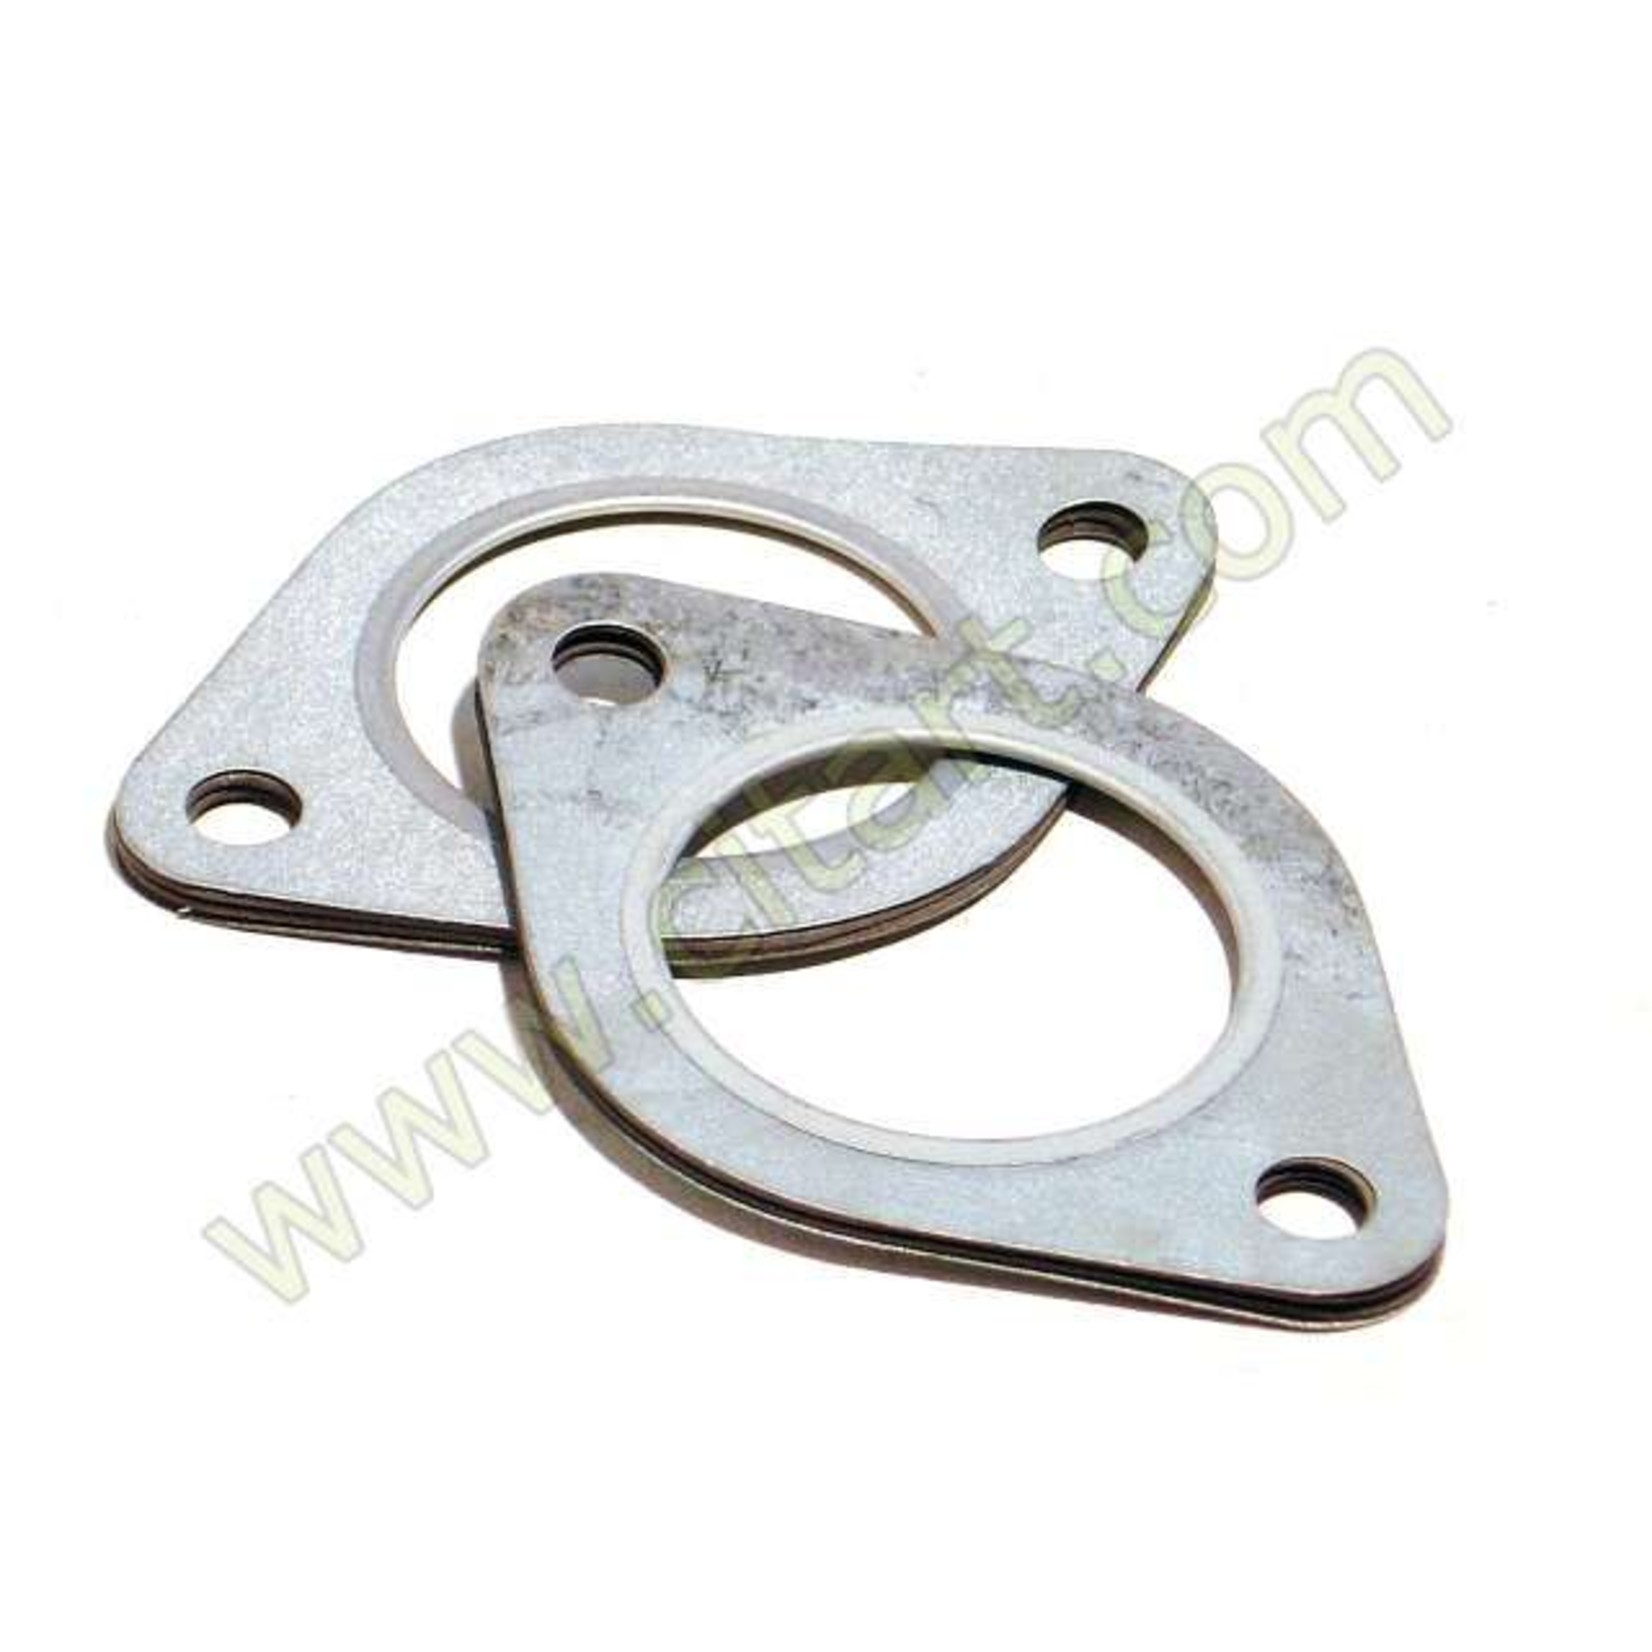 Gasket manifold - double pipe Nr Org: DX182060A